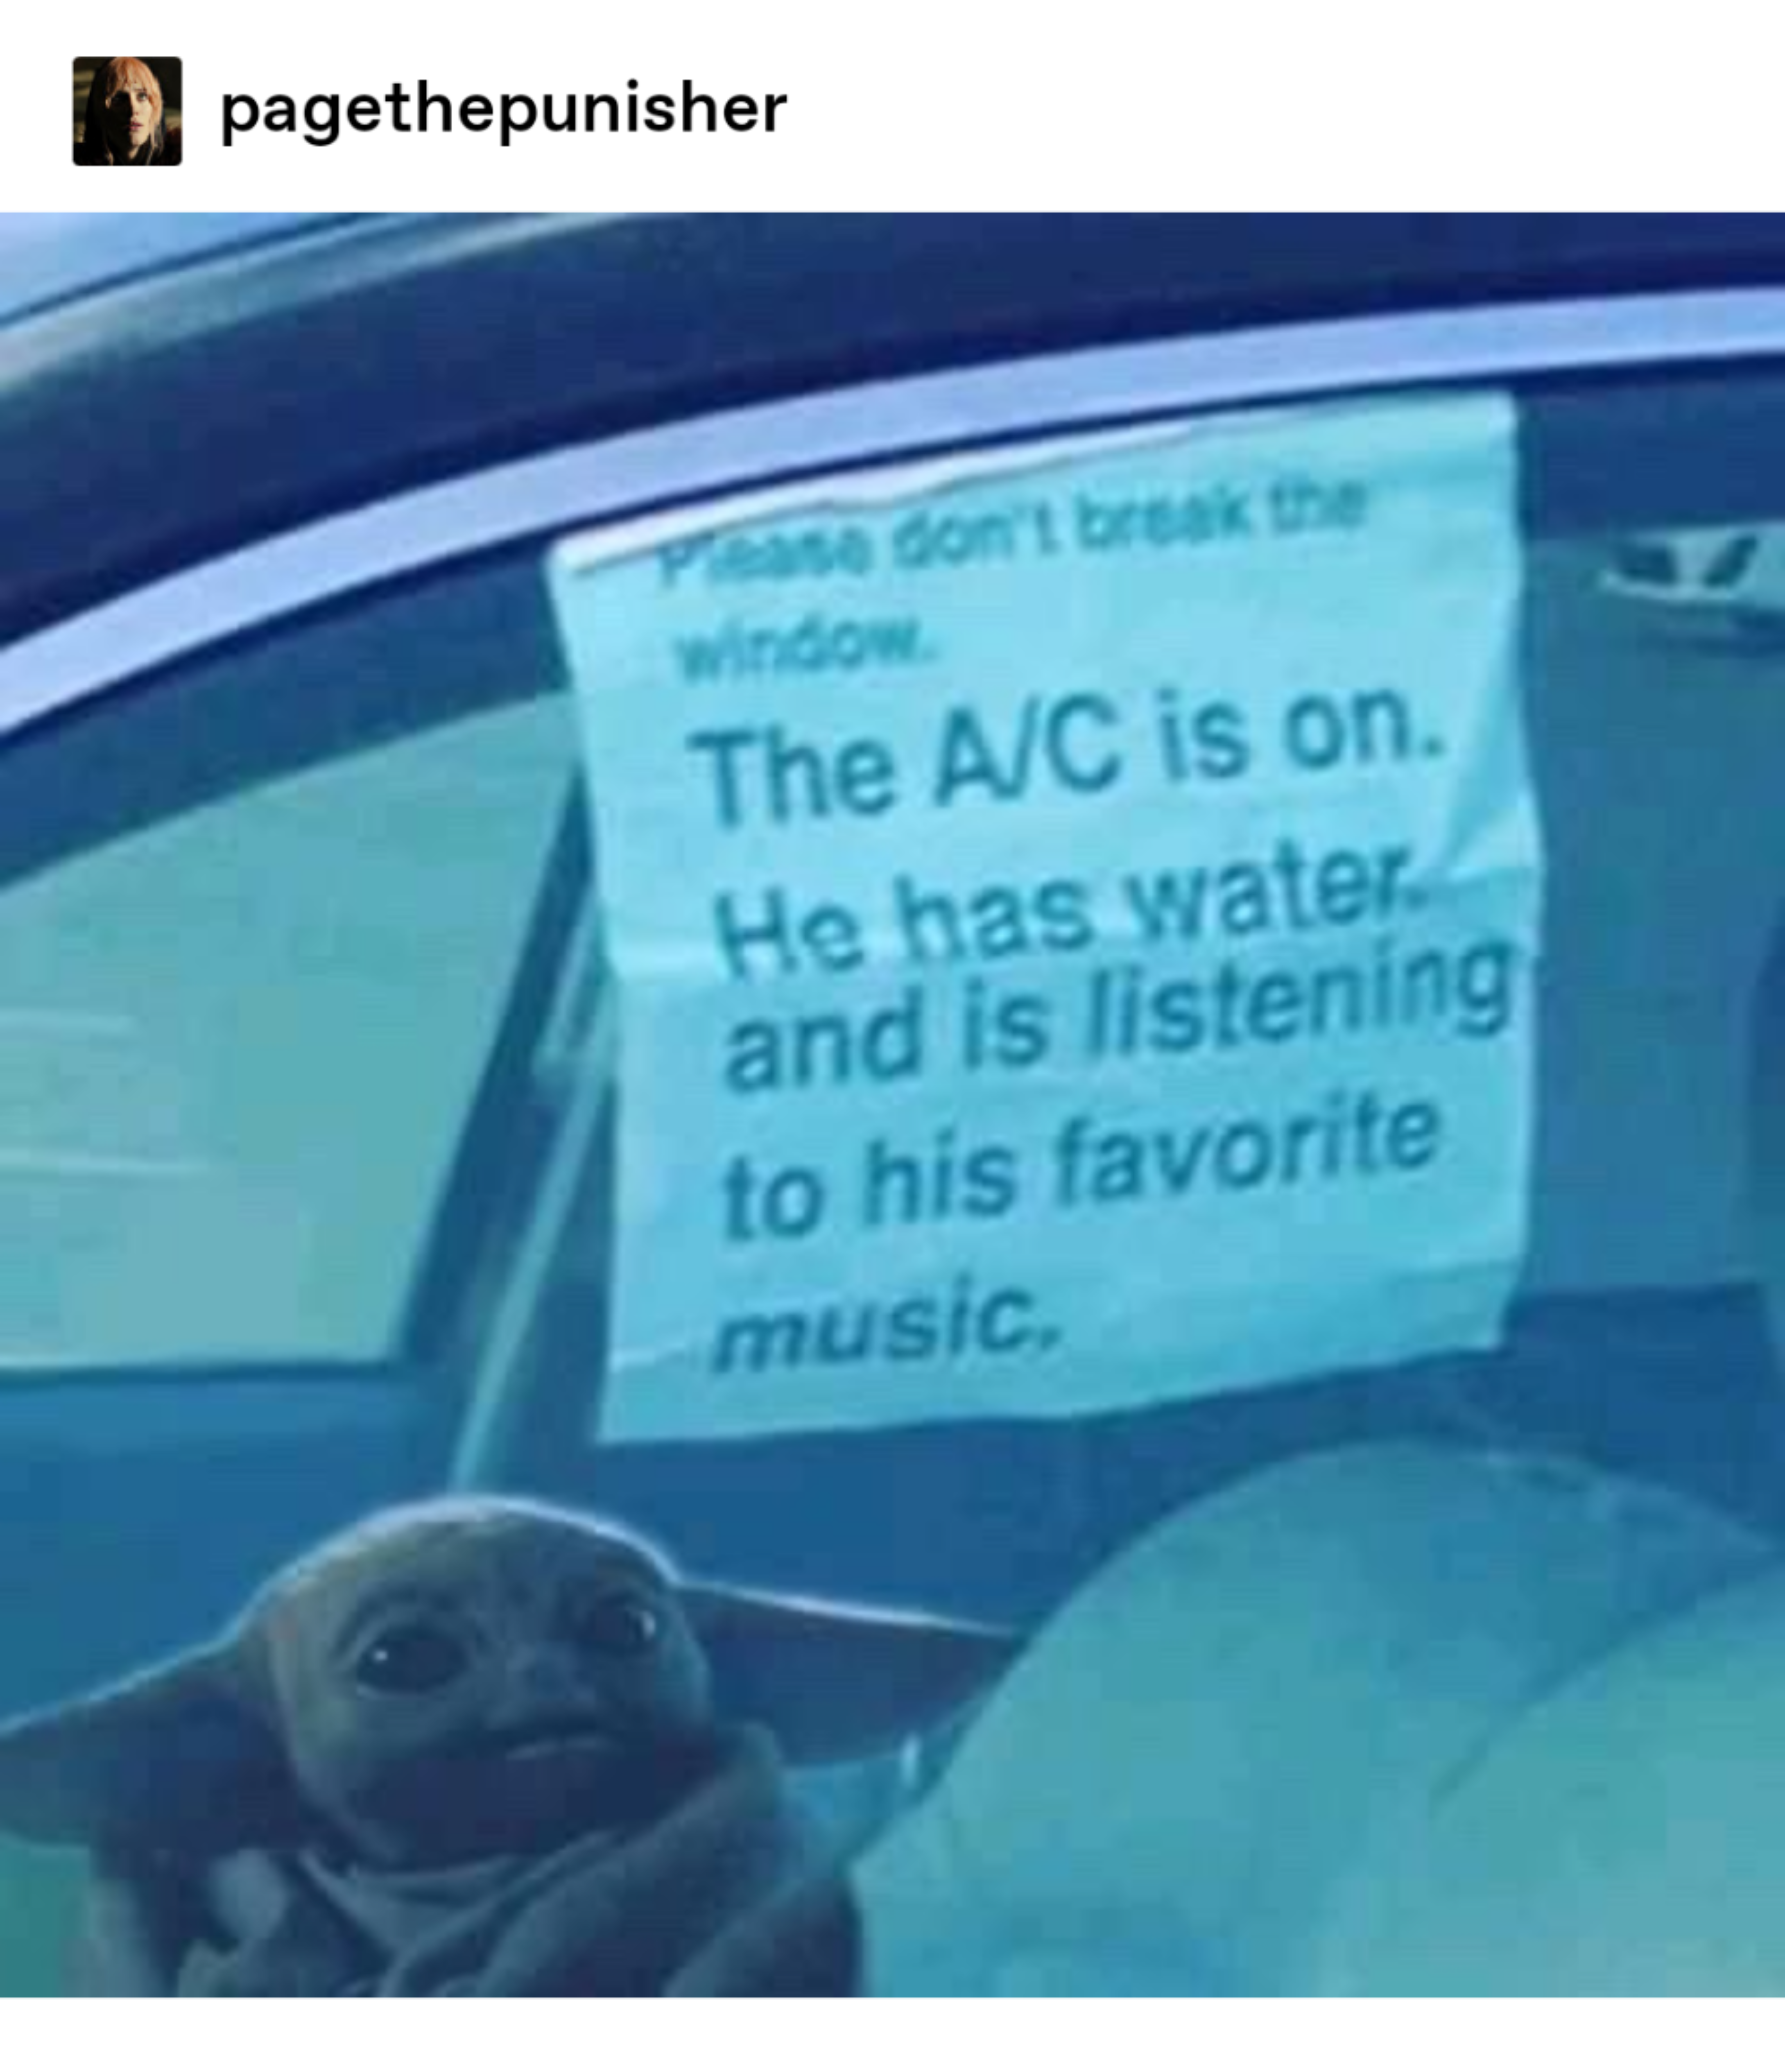 15 Tumblr Posts For People Who Want To Adopt Baby Yoda From The Mandalorian Yoda Meme Star Wars Humor Star Wars Baby